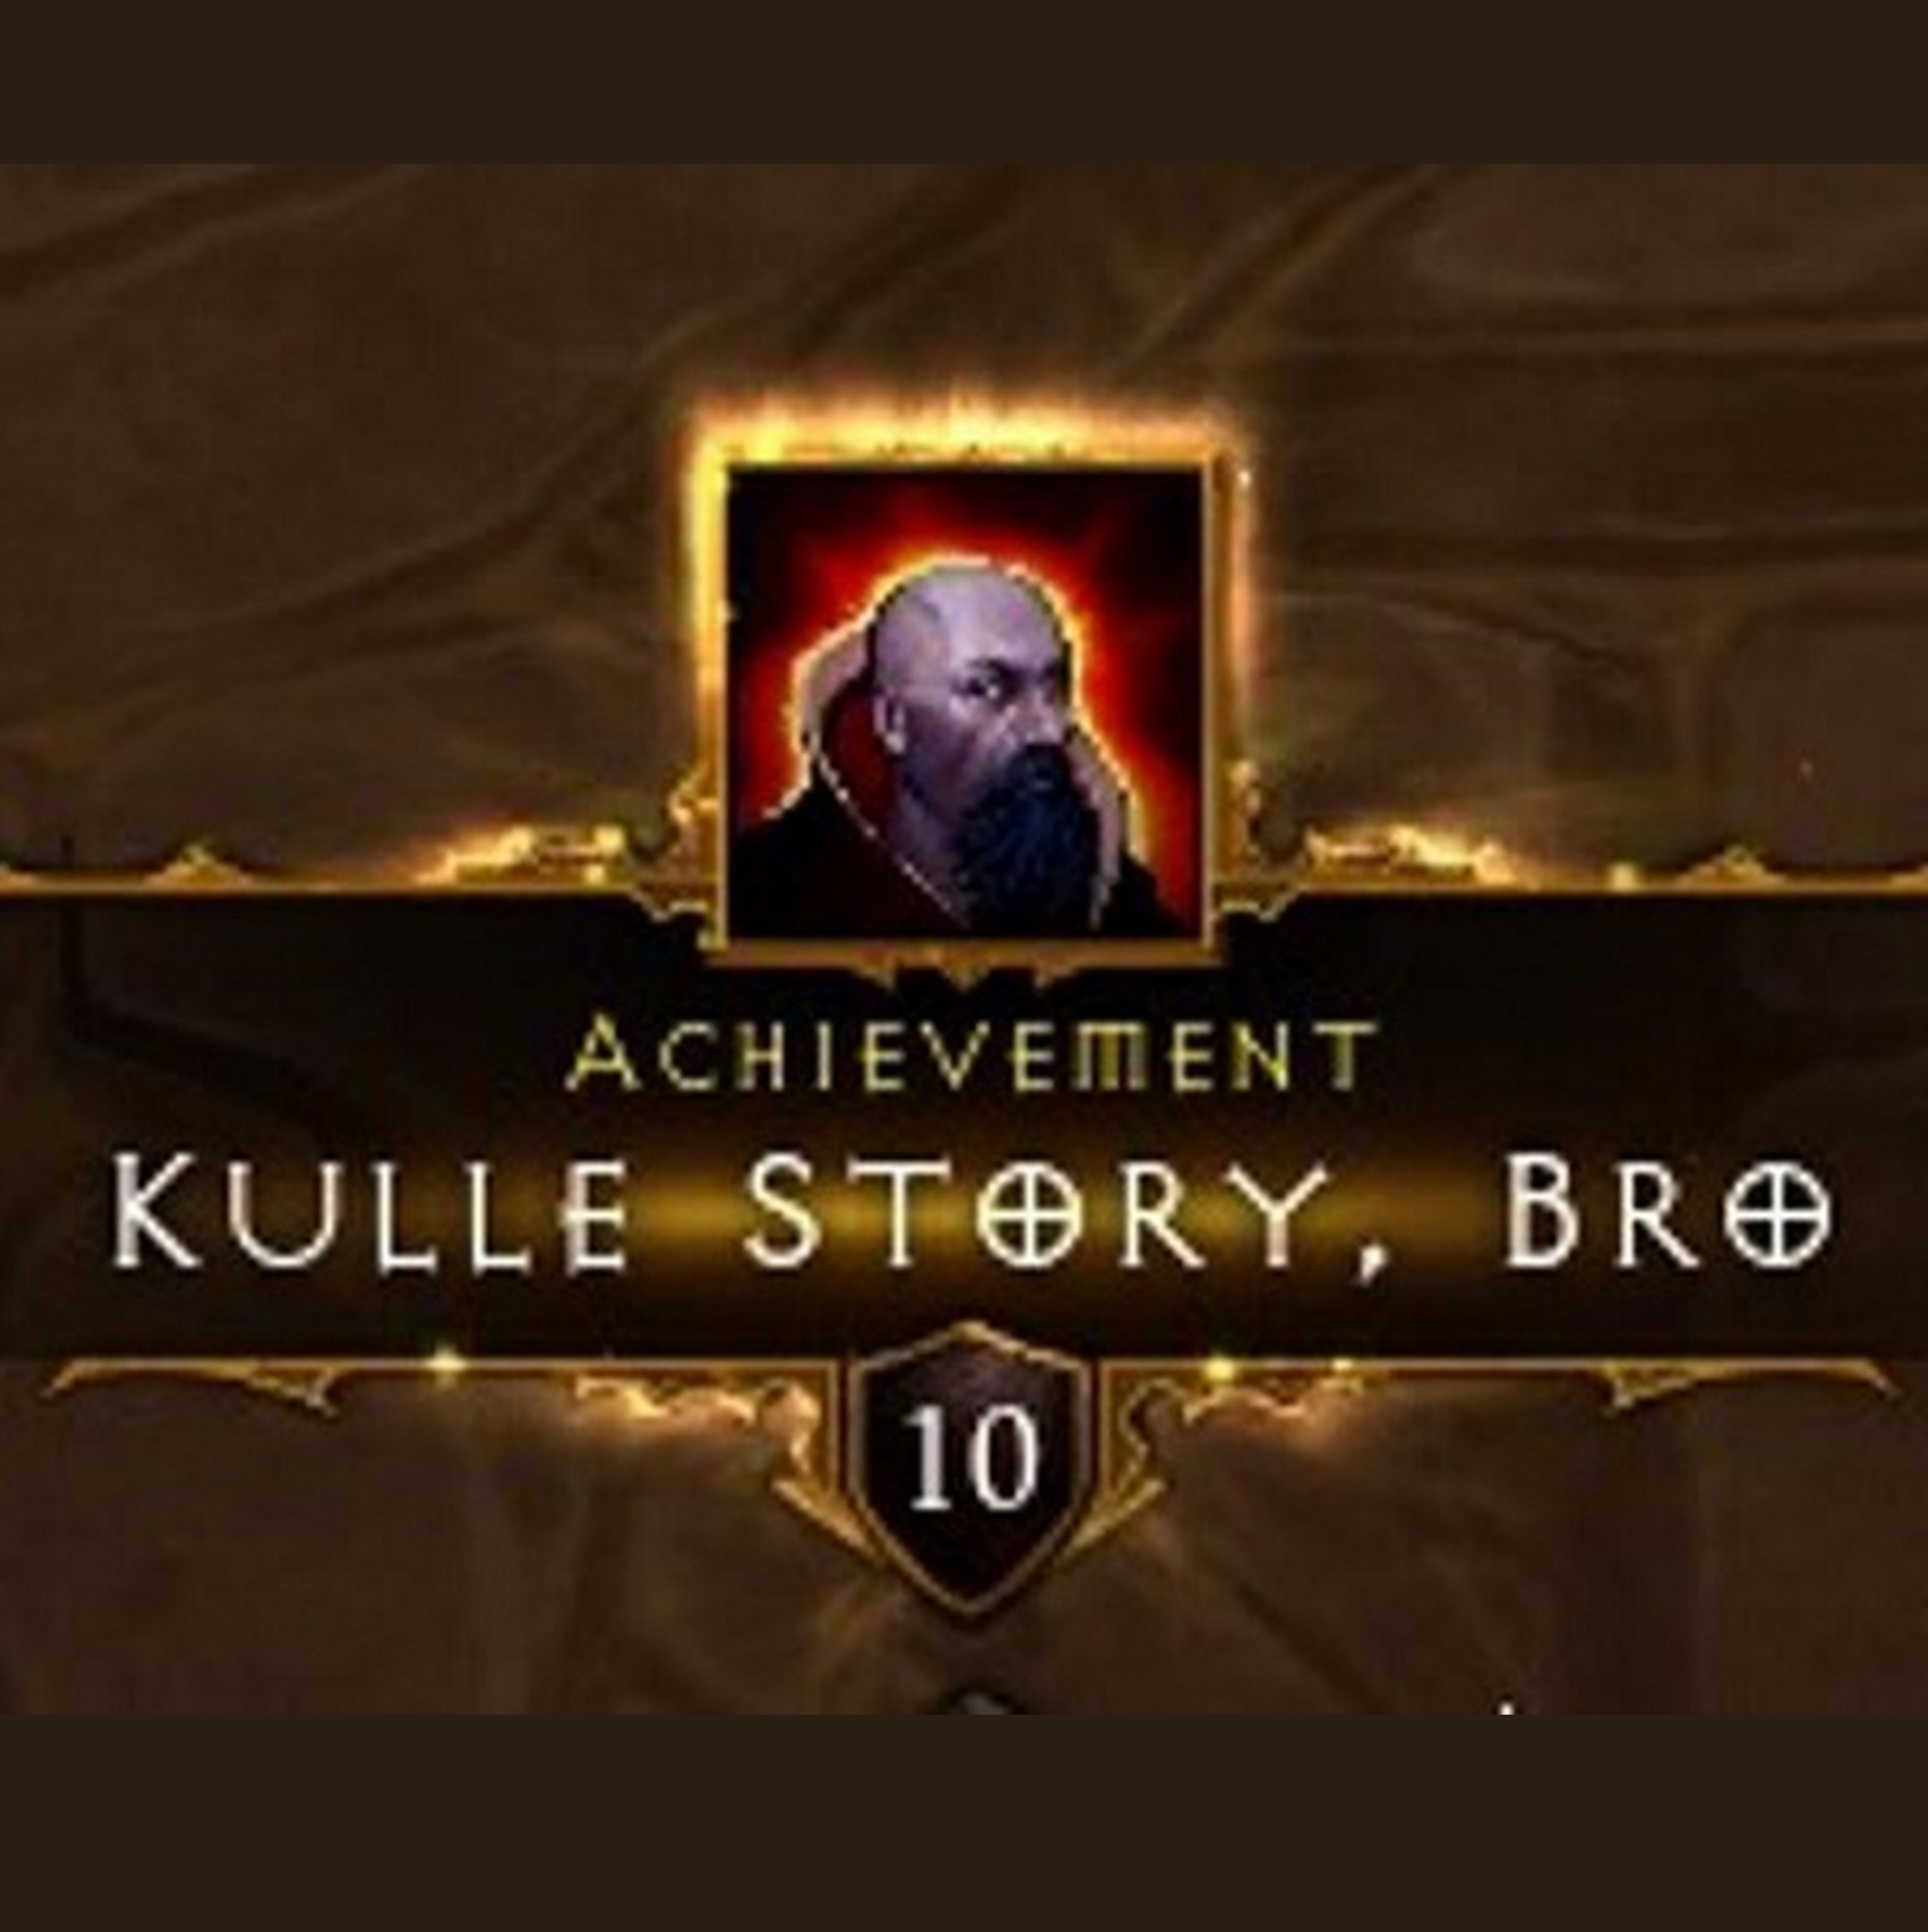 Kulle Story Bro - A Diablo 3 Podcast Episode 33